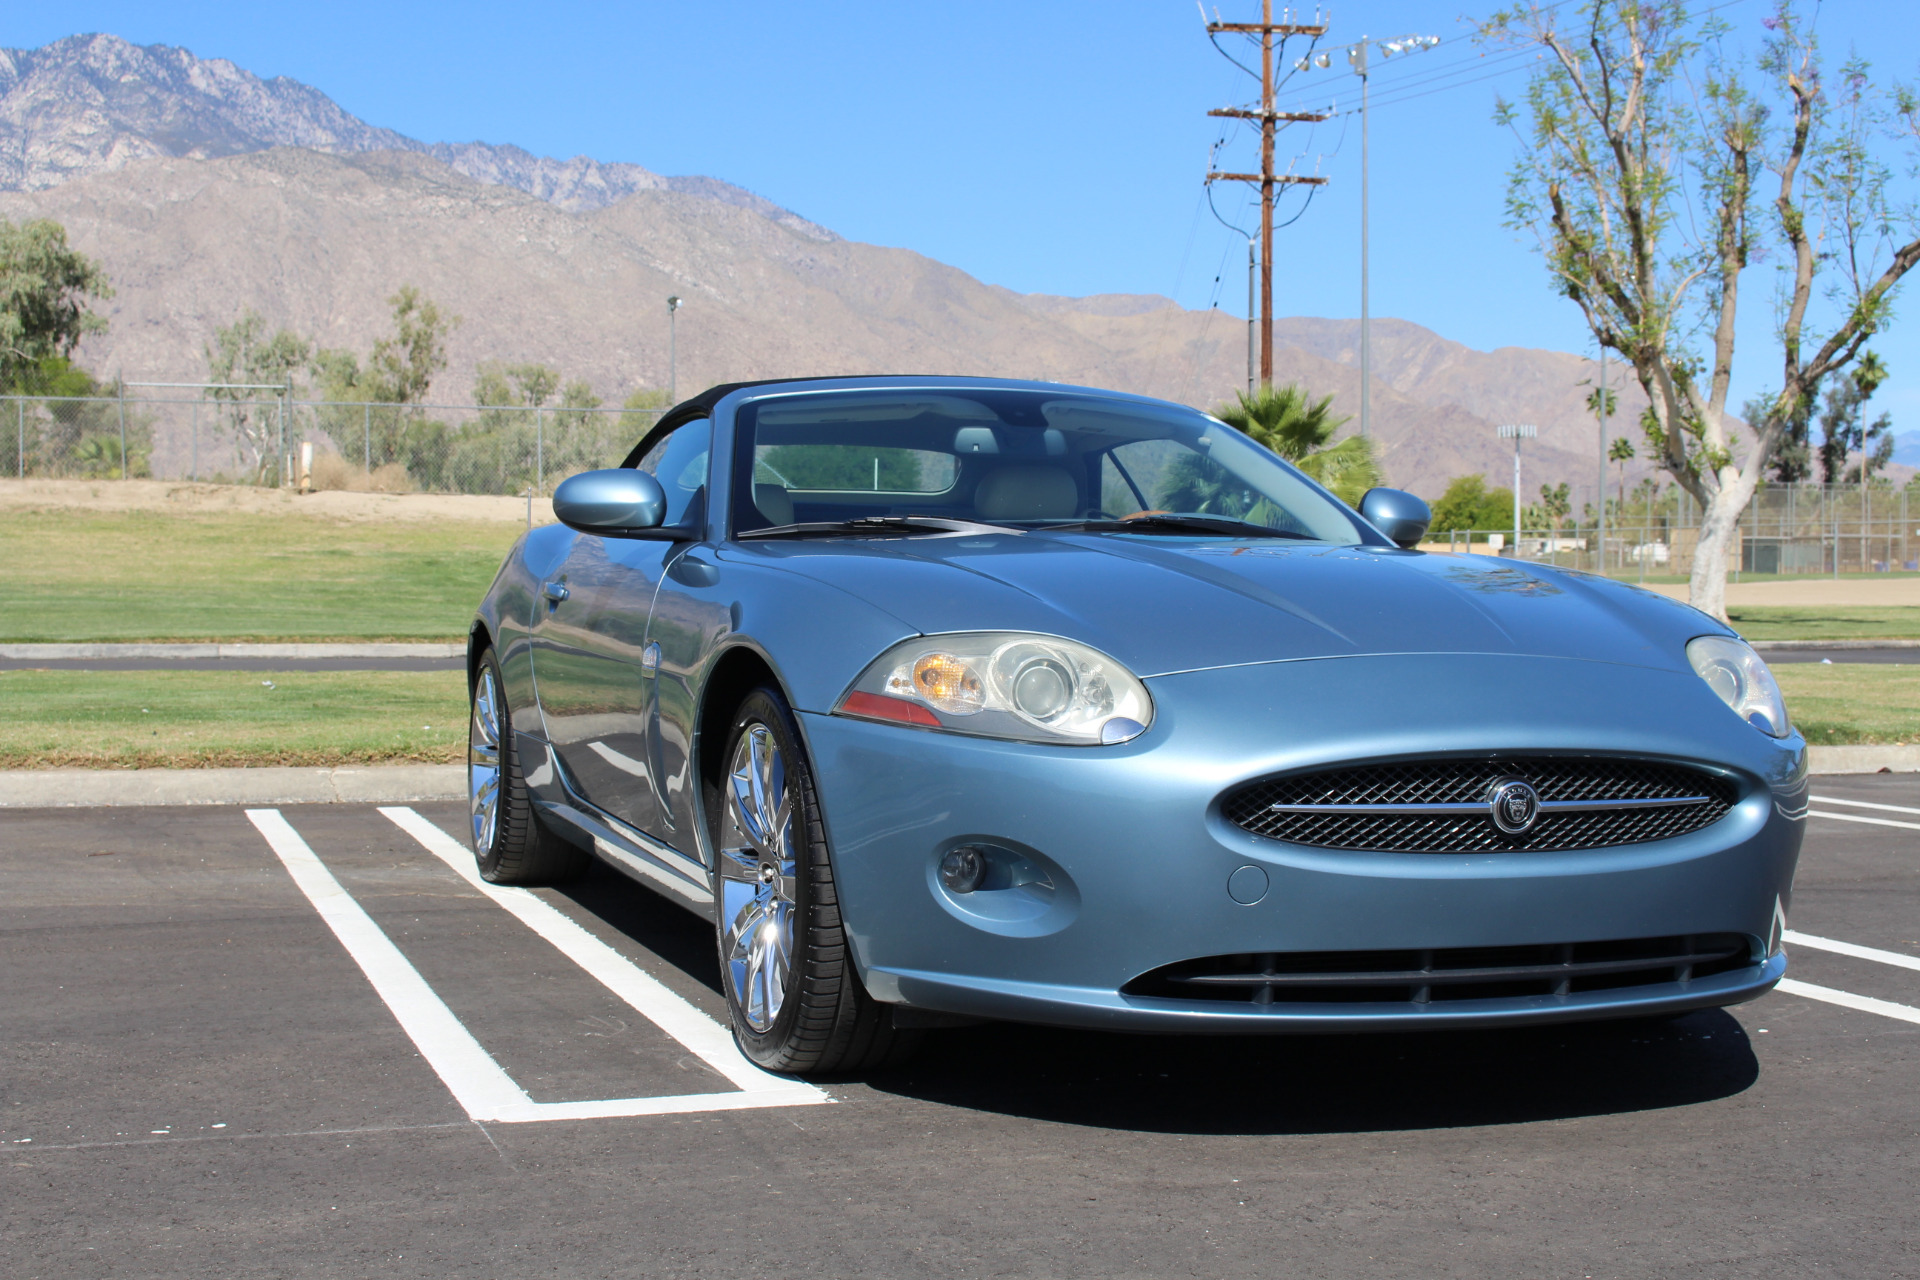 xk l stock sale jaguar near marietta used htm for ga main xkr c